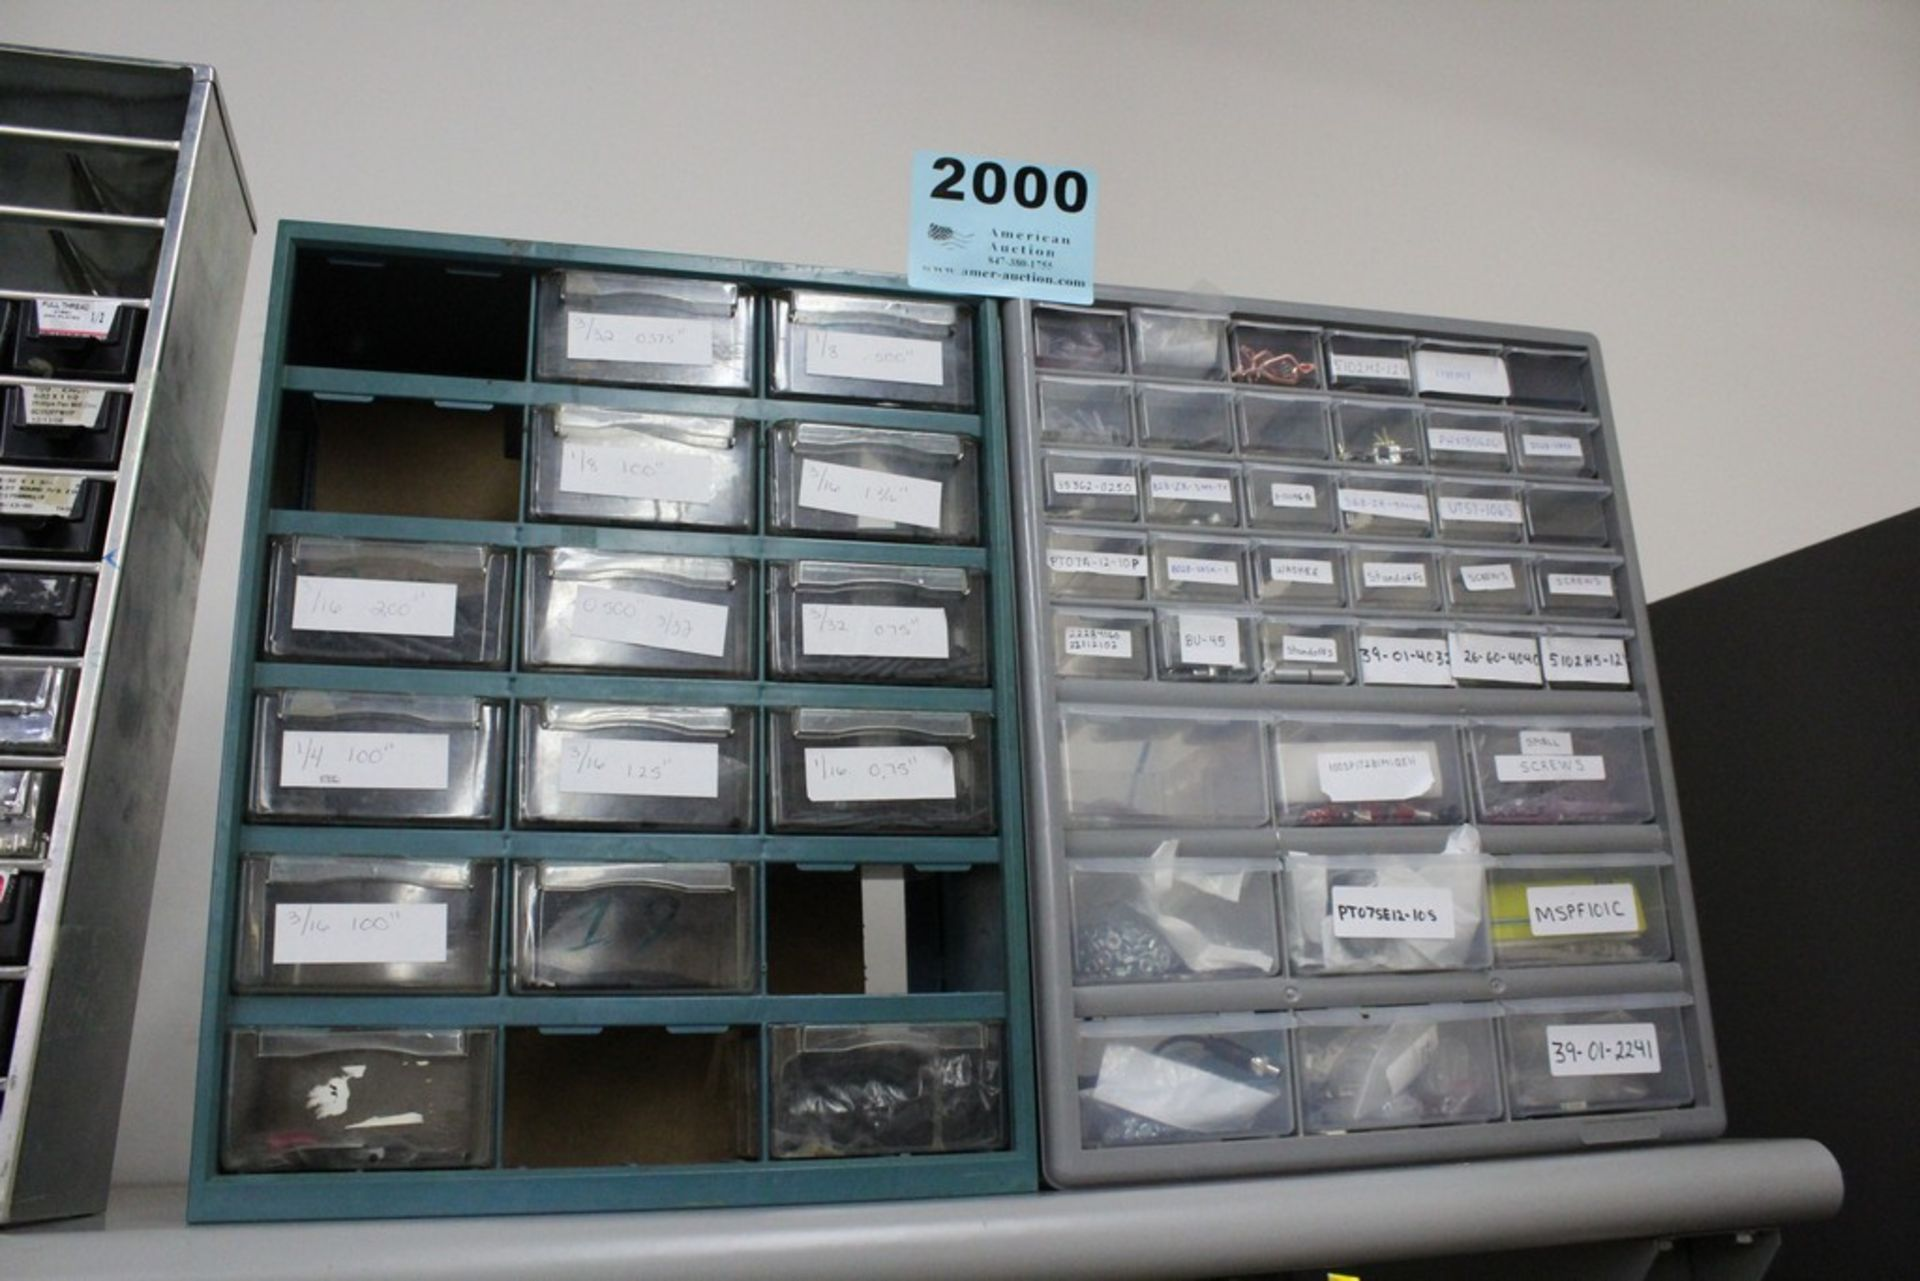 Lot 2000 - (2) MULTI-SLOT PARTS CABINETS WITH CONTENTS